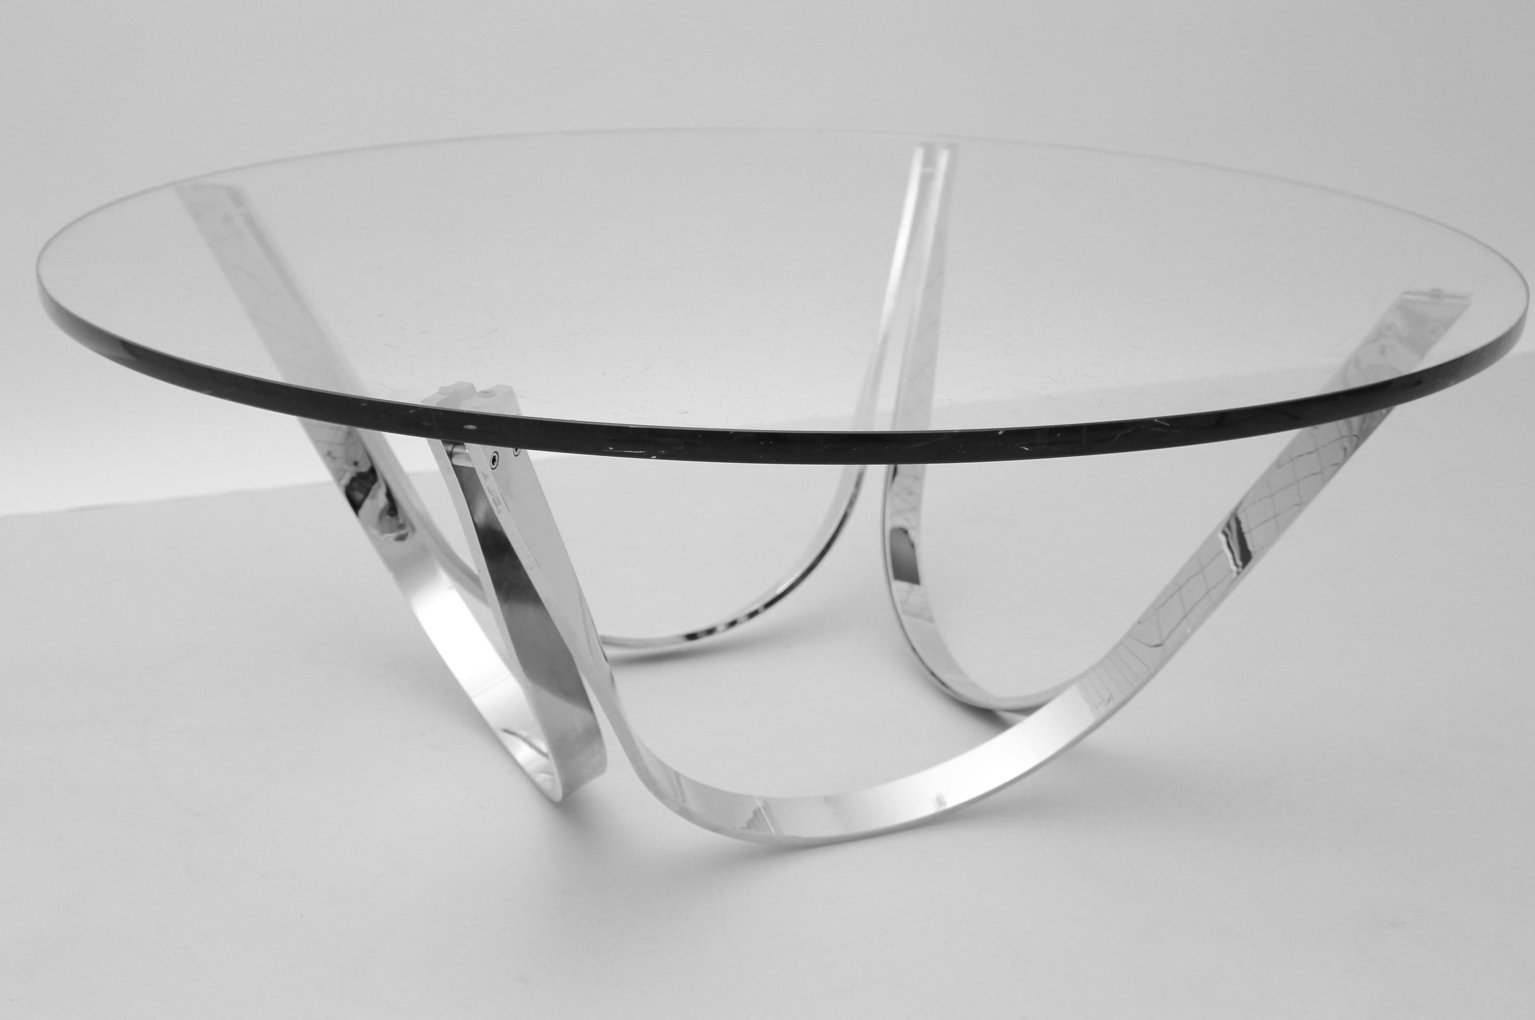 Mid century modern coffee table by roger sprunger for dunbar 1960s